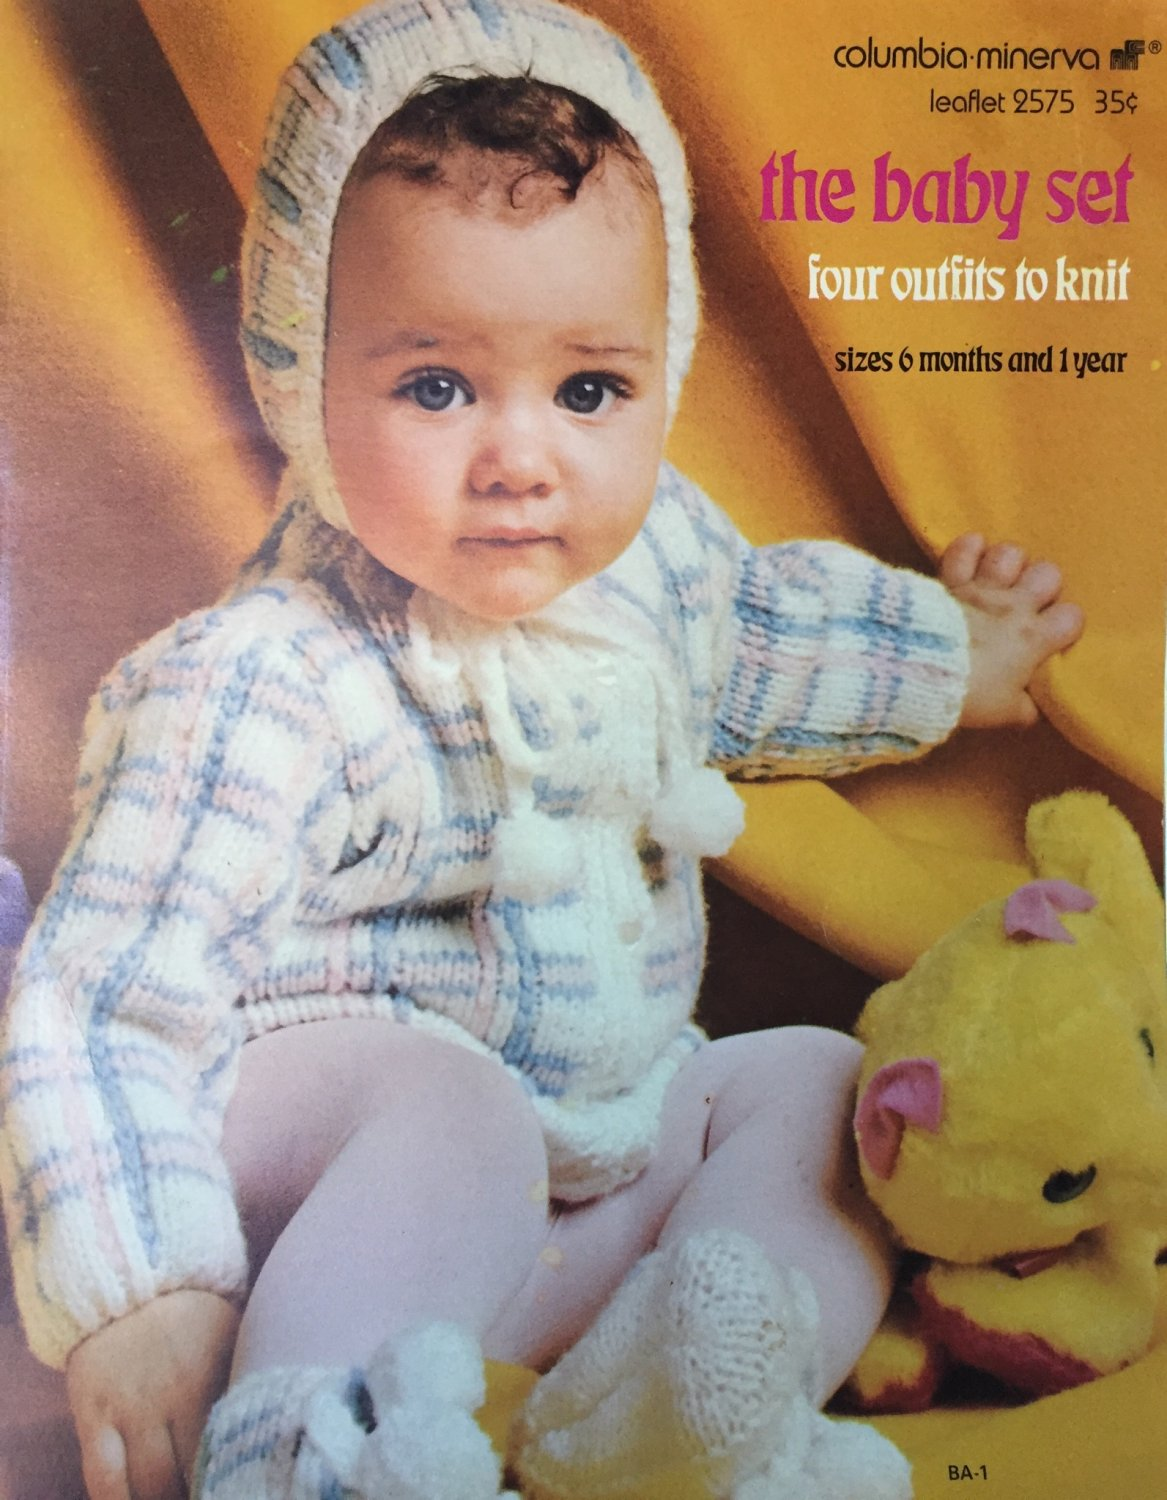 The Baby Set Four Outfits to knit Columbia Minerva 2575